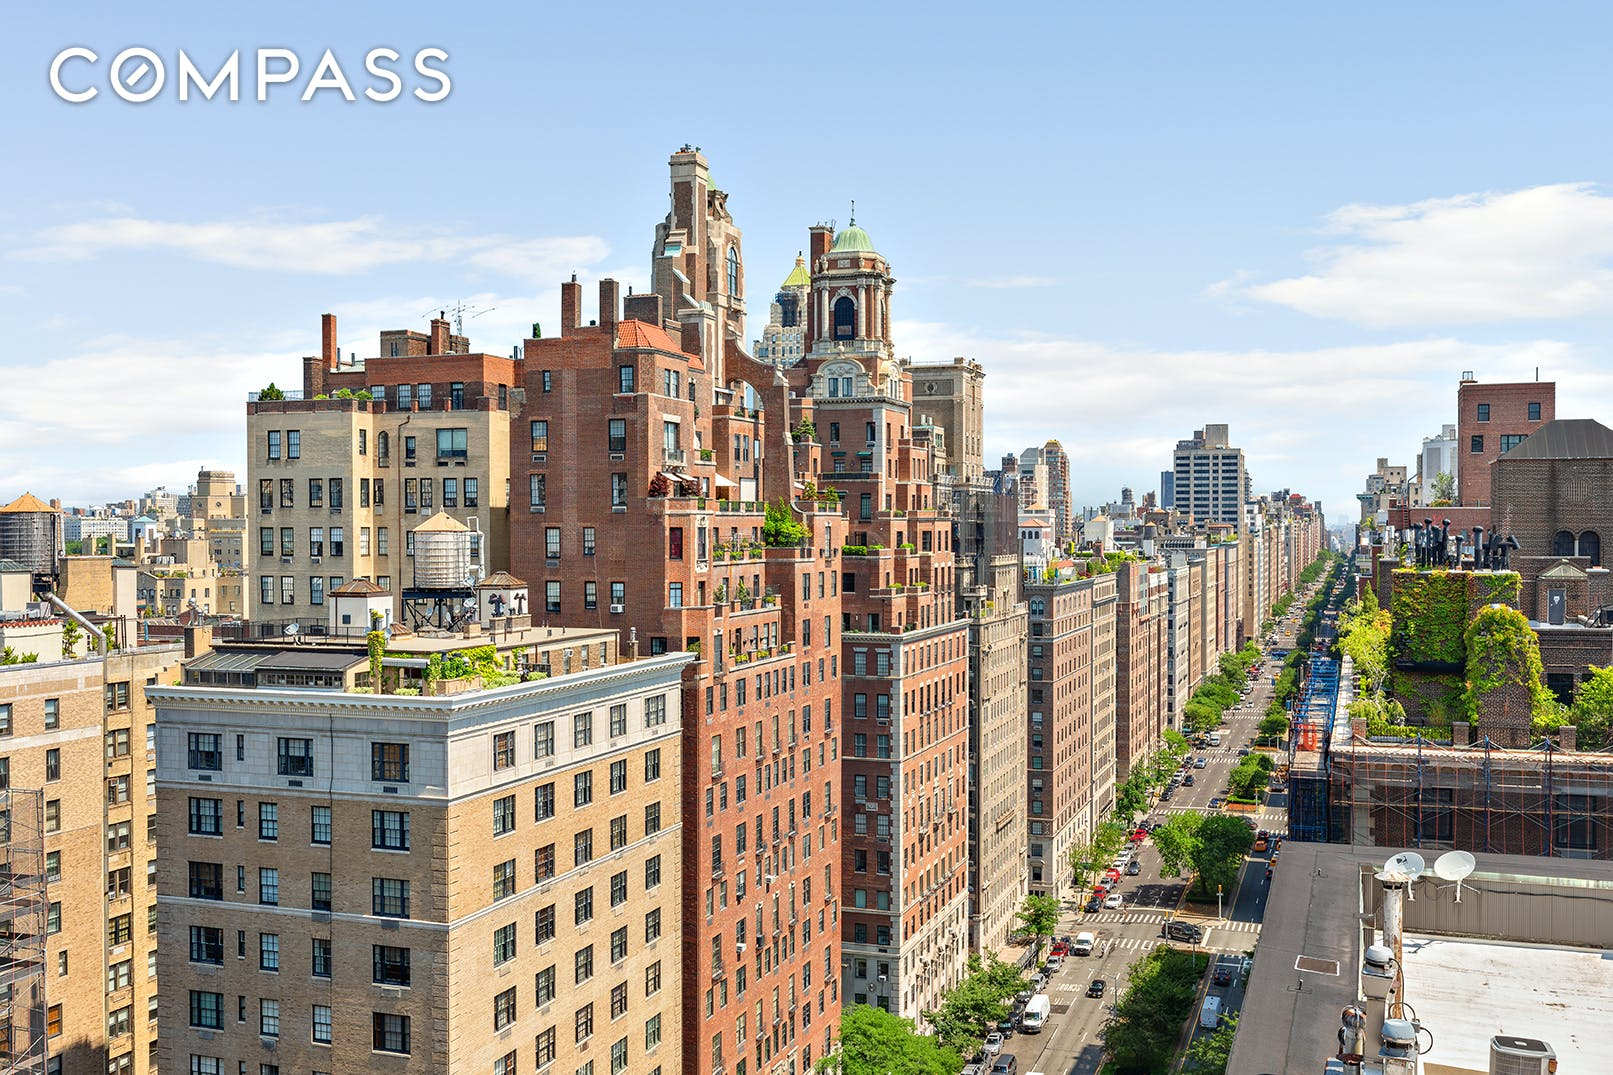 Located on one of the most prestigious corners of the Upper East Side at 71st Street and Park Avenue, just two blocks from Central Park and surrounded by some of the most beautiful buildings and wonderful shops and restaurants  in New York City,  this four bedroom (plus a library), four-and-a-half-bathroom 4,337 square foot condominium with charming terraces offers the grace of a pre-war Park Avenue building with the amenities, flexibility and modern design and construction of a new condominium.   With its own private elevator vestibule, Apartment 20A provides incredible privacy and elegance.  Wrap around open city views, wonderfully scaled rooms and beautiful finishes make this apartment exceptional. A loft-like great room feels Parisian chic and works perfectly for entertaining. Just adjacent is an intimate library with direct access to a private terrace with spectacular northern, southern, and western views. A beautiful, formal powder room is located just off the entrance gallery.  The large rectangular kitchen by Varenna, complete with Miele appliances, features an expansive island and great storage with an adjacent pantry/mud room with a service entrance. The kitchen is cleverly open to the dining portion of the great room, but designed to be able to be separate for more formal occasions. There is also a full laundry room in the apartment.  A peaceful bedroom wing, features a bright and airy primary bedroom suite, three  secondary bedrooms all with ensuite baths. The primary bedroom suite offers enviable walk-in closets with a dressing area and palatial en-suite windowed 7-fixture bath with a soaking tub, heated marble floors, double sinks, two showers, and two water closets. The bedroom itself is perched on the corner of 71st and Park affording views of iconic Park Avenue and a piece of Central Park. The spacious secondary bedrooms also include en suite baths outfitted with the highest quality stone and hardware.  With its seasoned staff, superior layouts and 